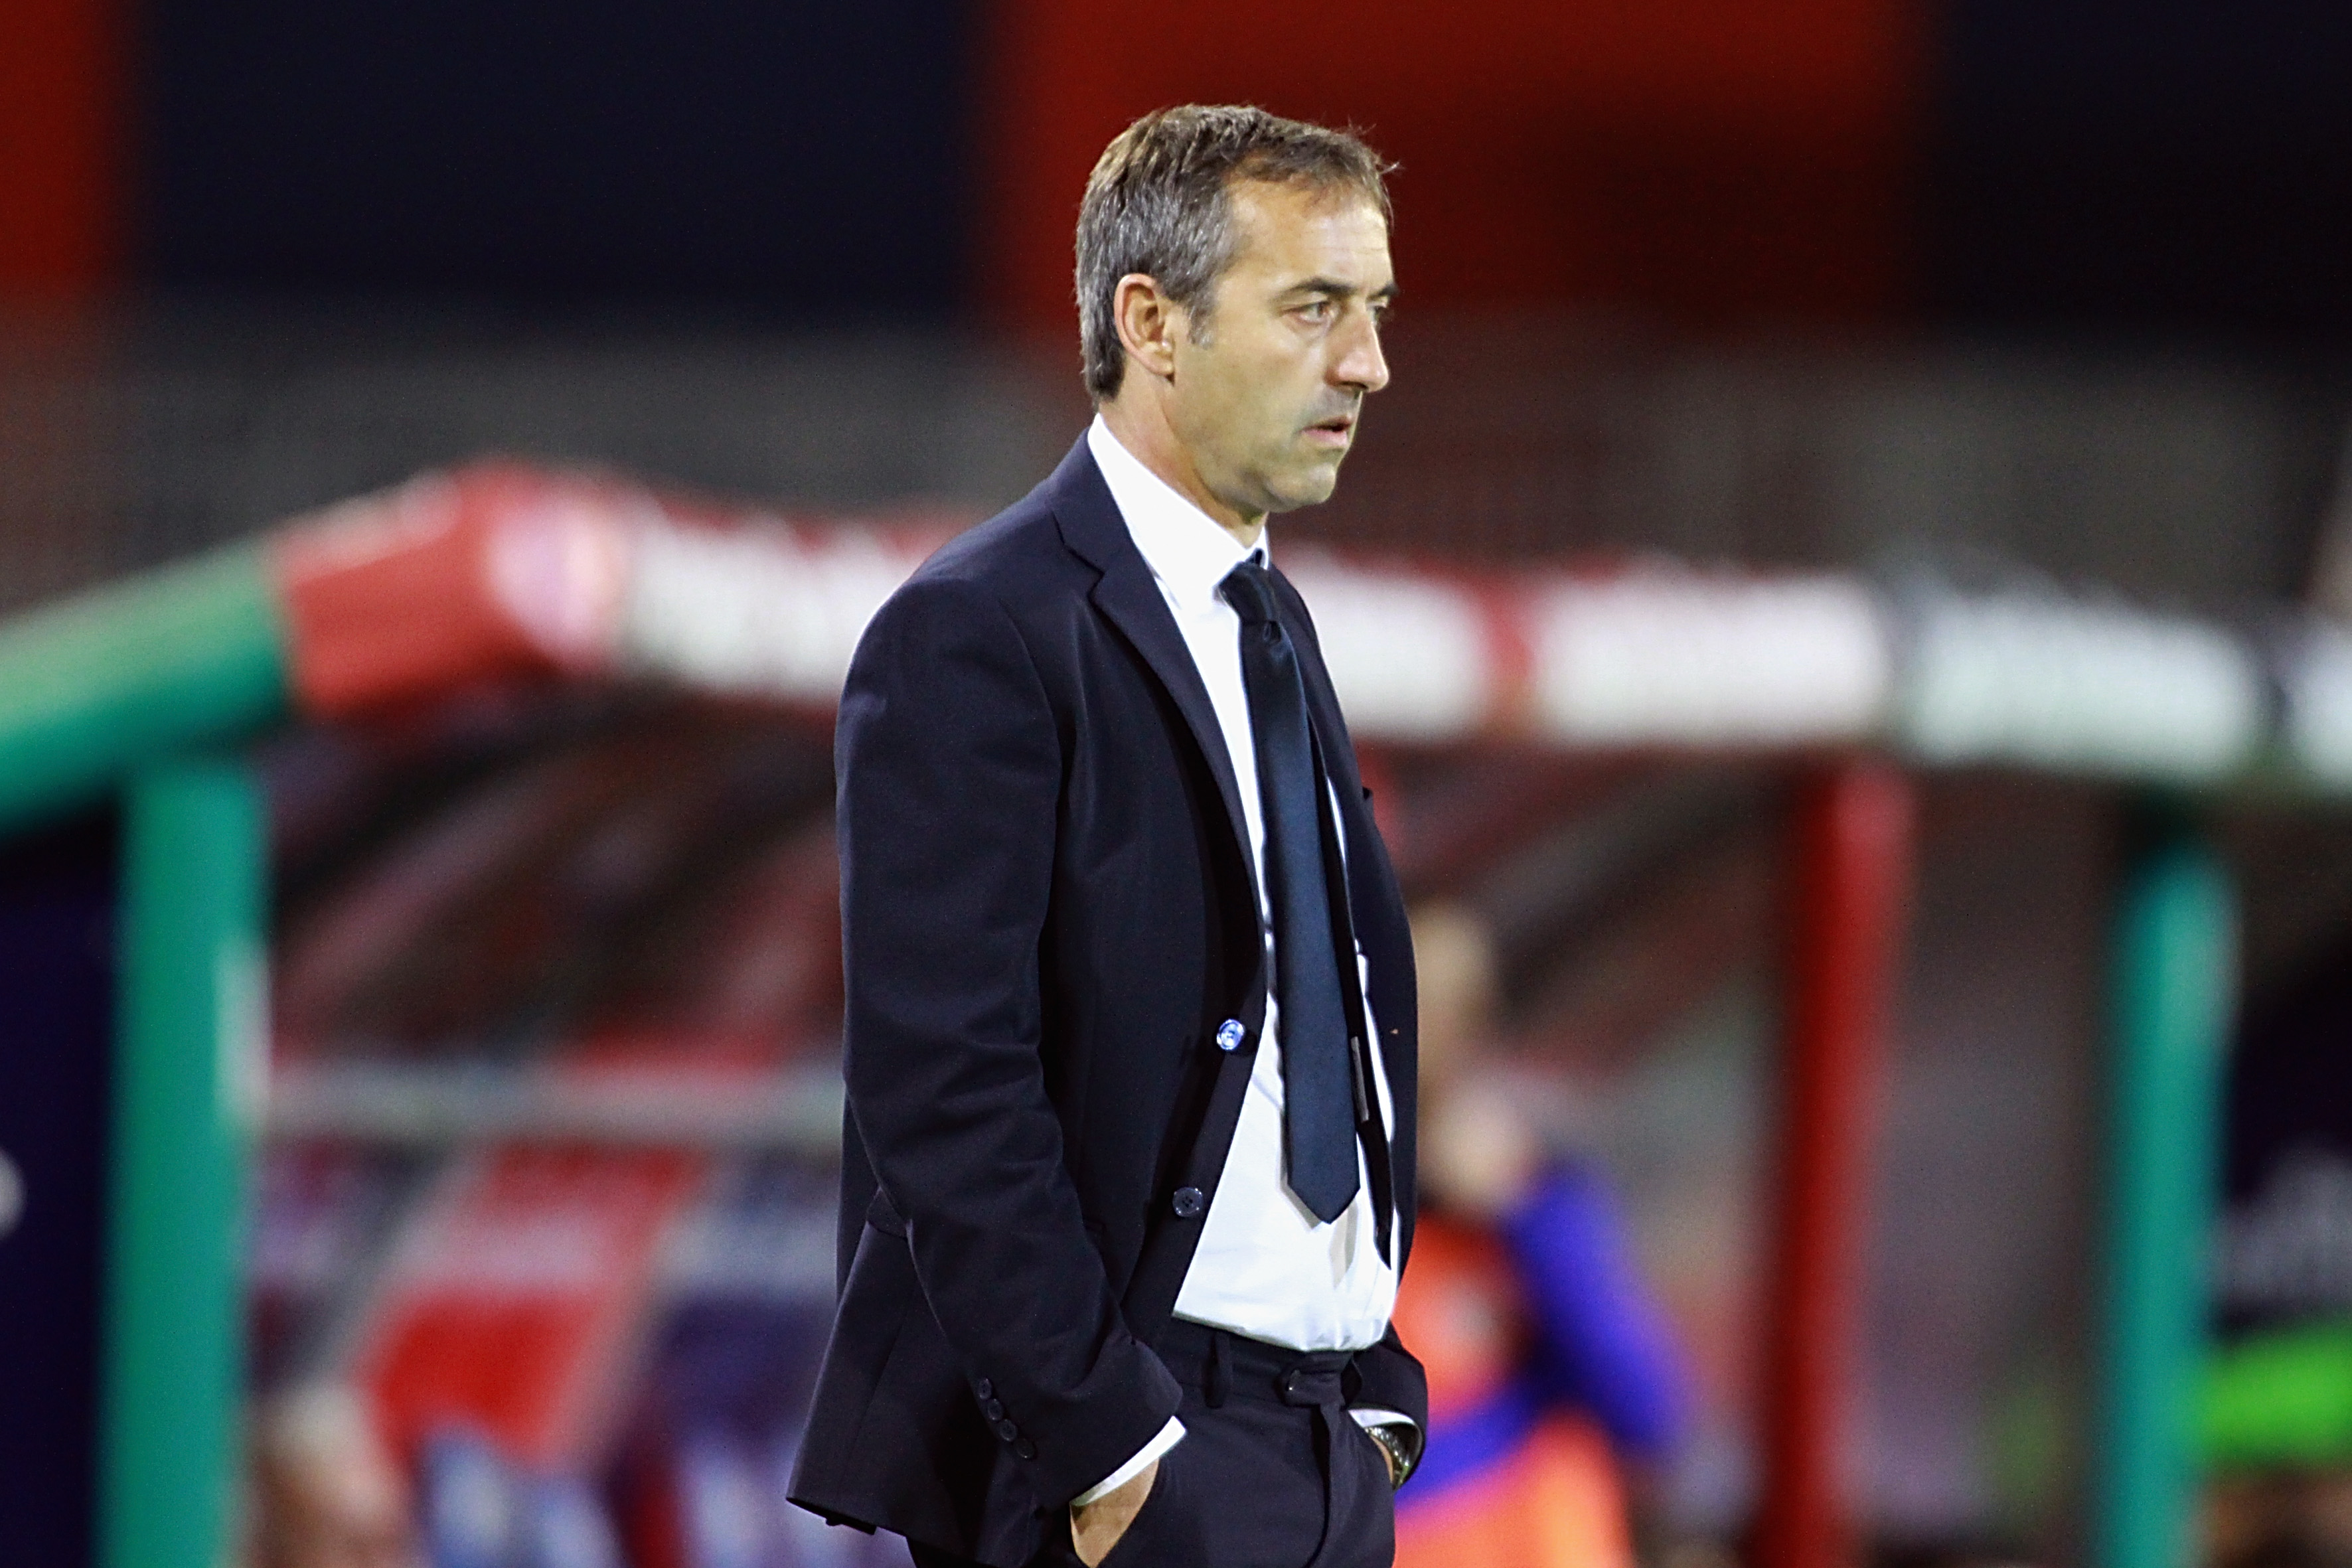 CAGLIARI, ITALY - SEPTEMBER 26: Sampdoria's coach Giampaolo MArco looks on during the Serie A match between Cagliari Calcio and UC Sampdoria at Stadio Sant'Elia on September 26, 2016 in Cagliari, Italy. (Photo by Enrico Locci/Getty Images)